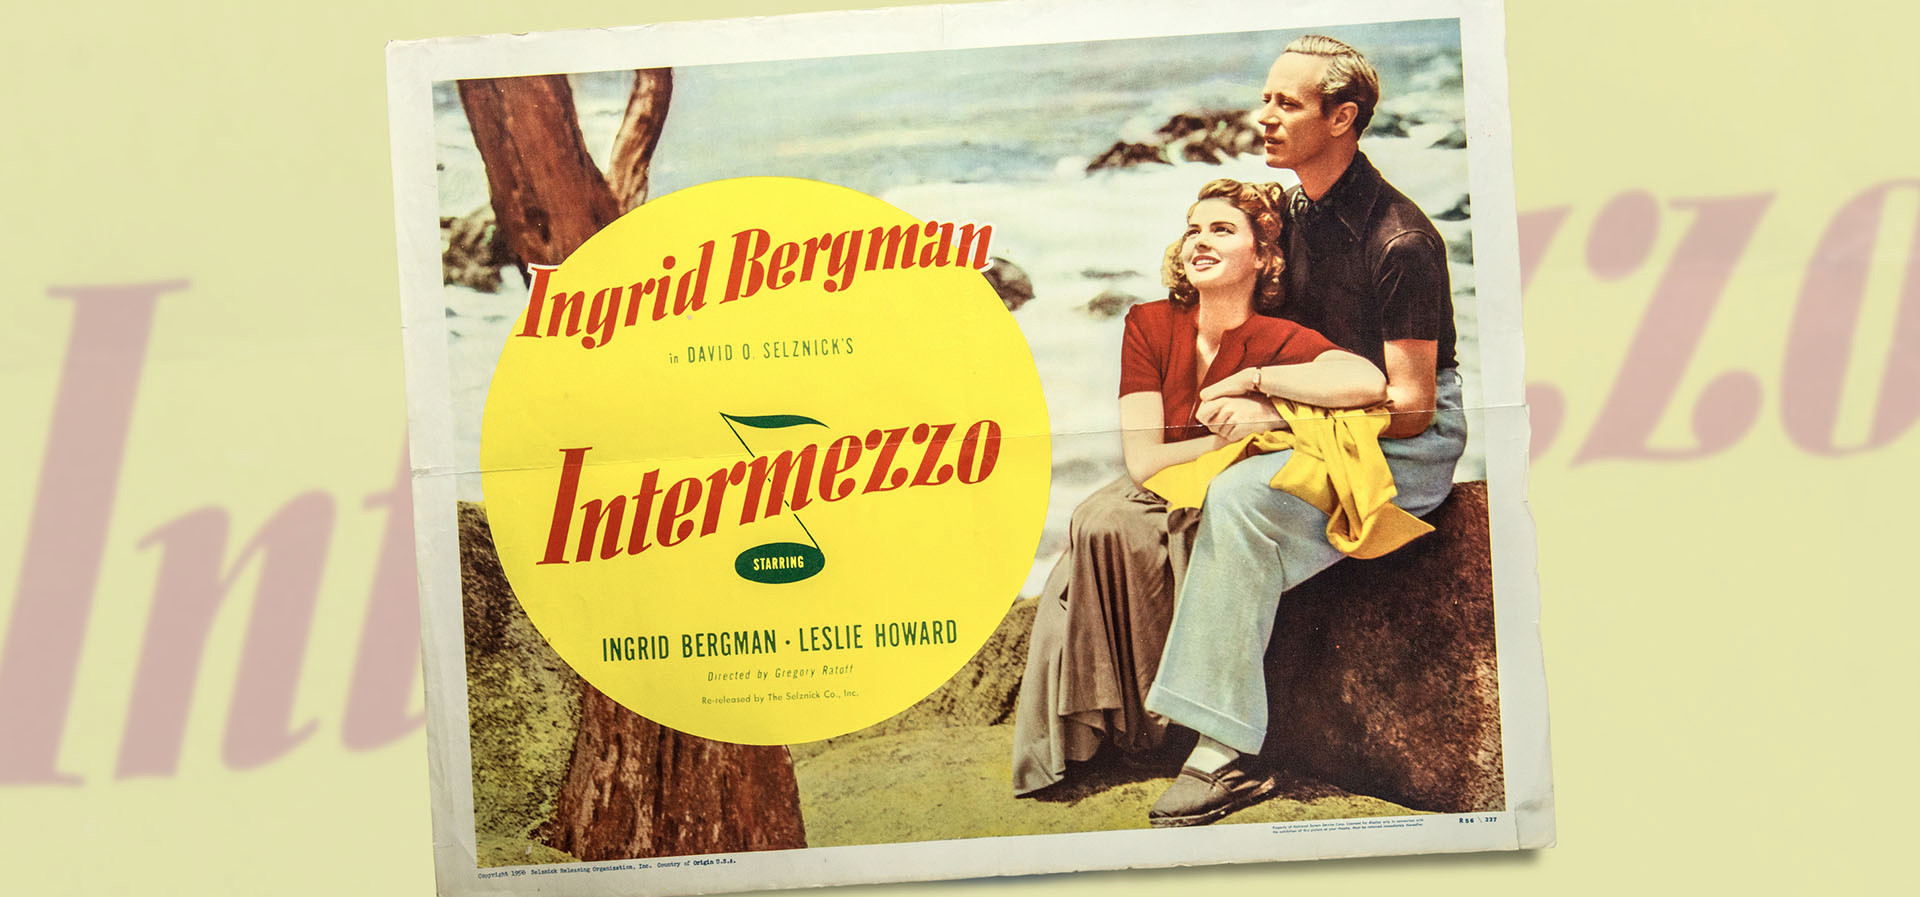 Leslie Howard and Ingrid Bergman in Intermezzo